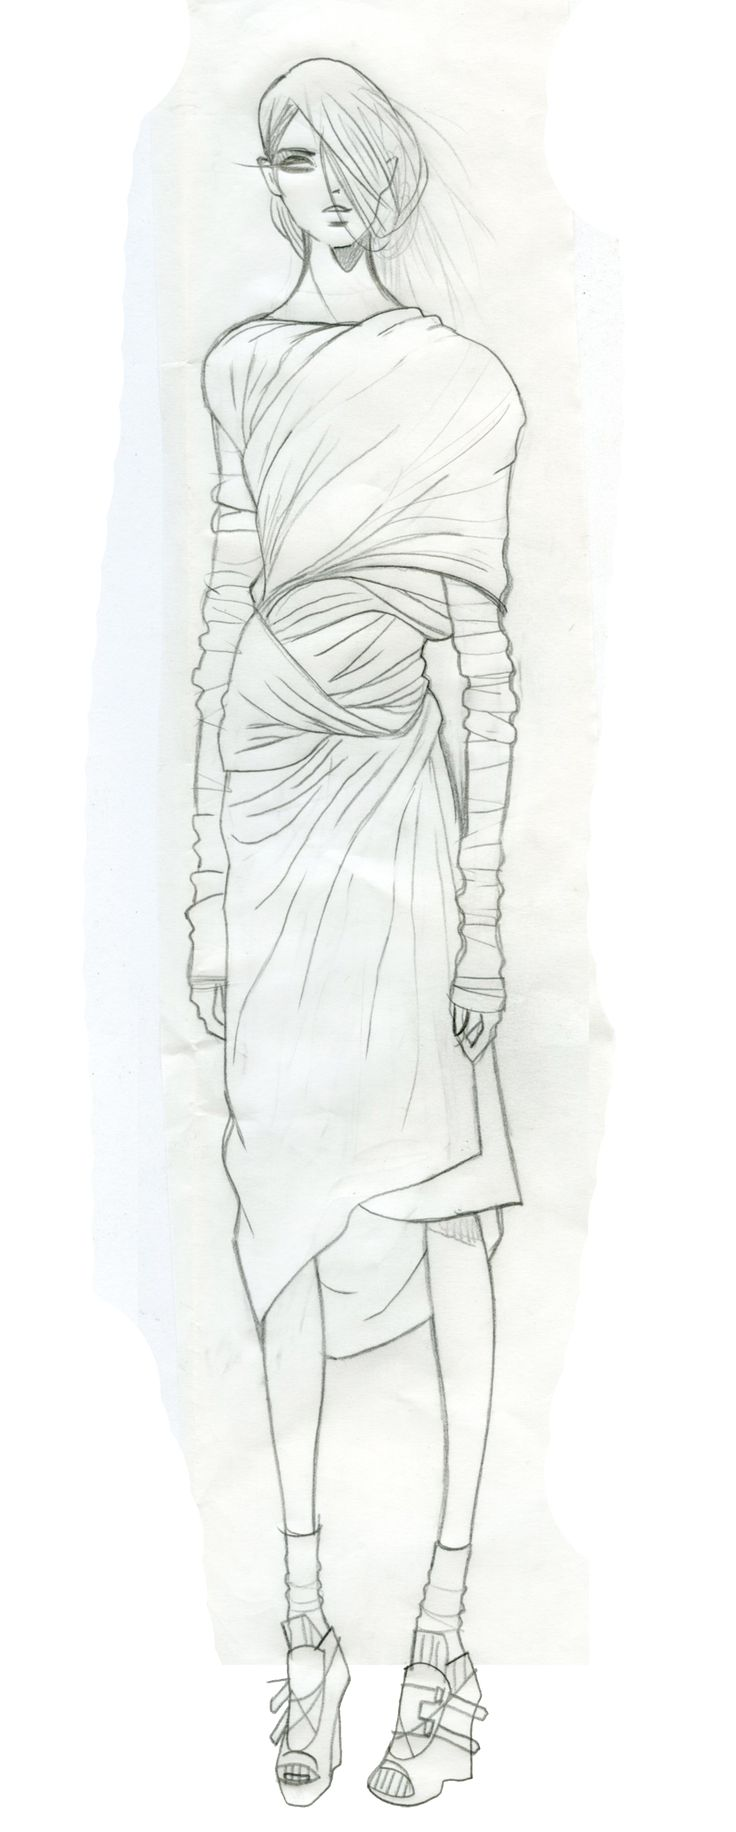 Fashion Sketchbook - fashion design illustration; dress drawing; fashion sketch; fashion portfolio